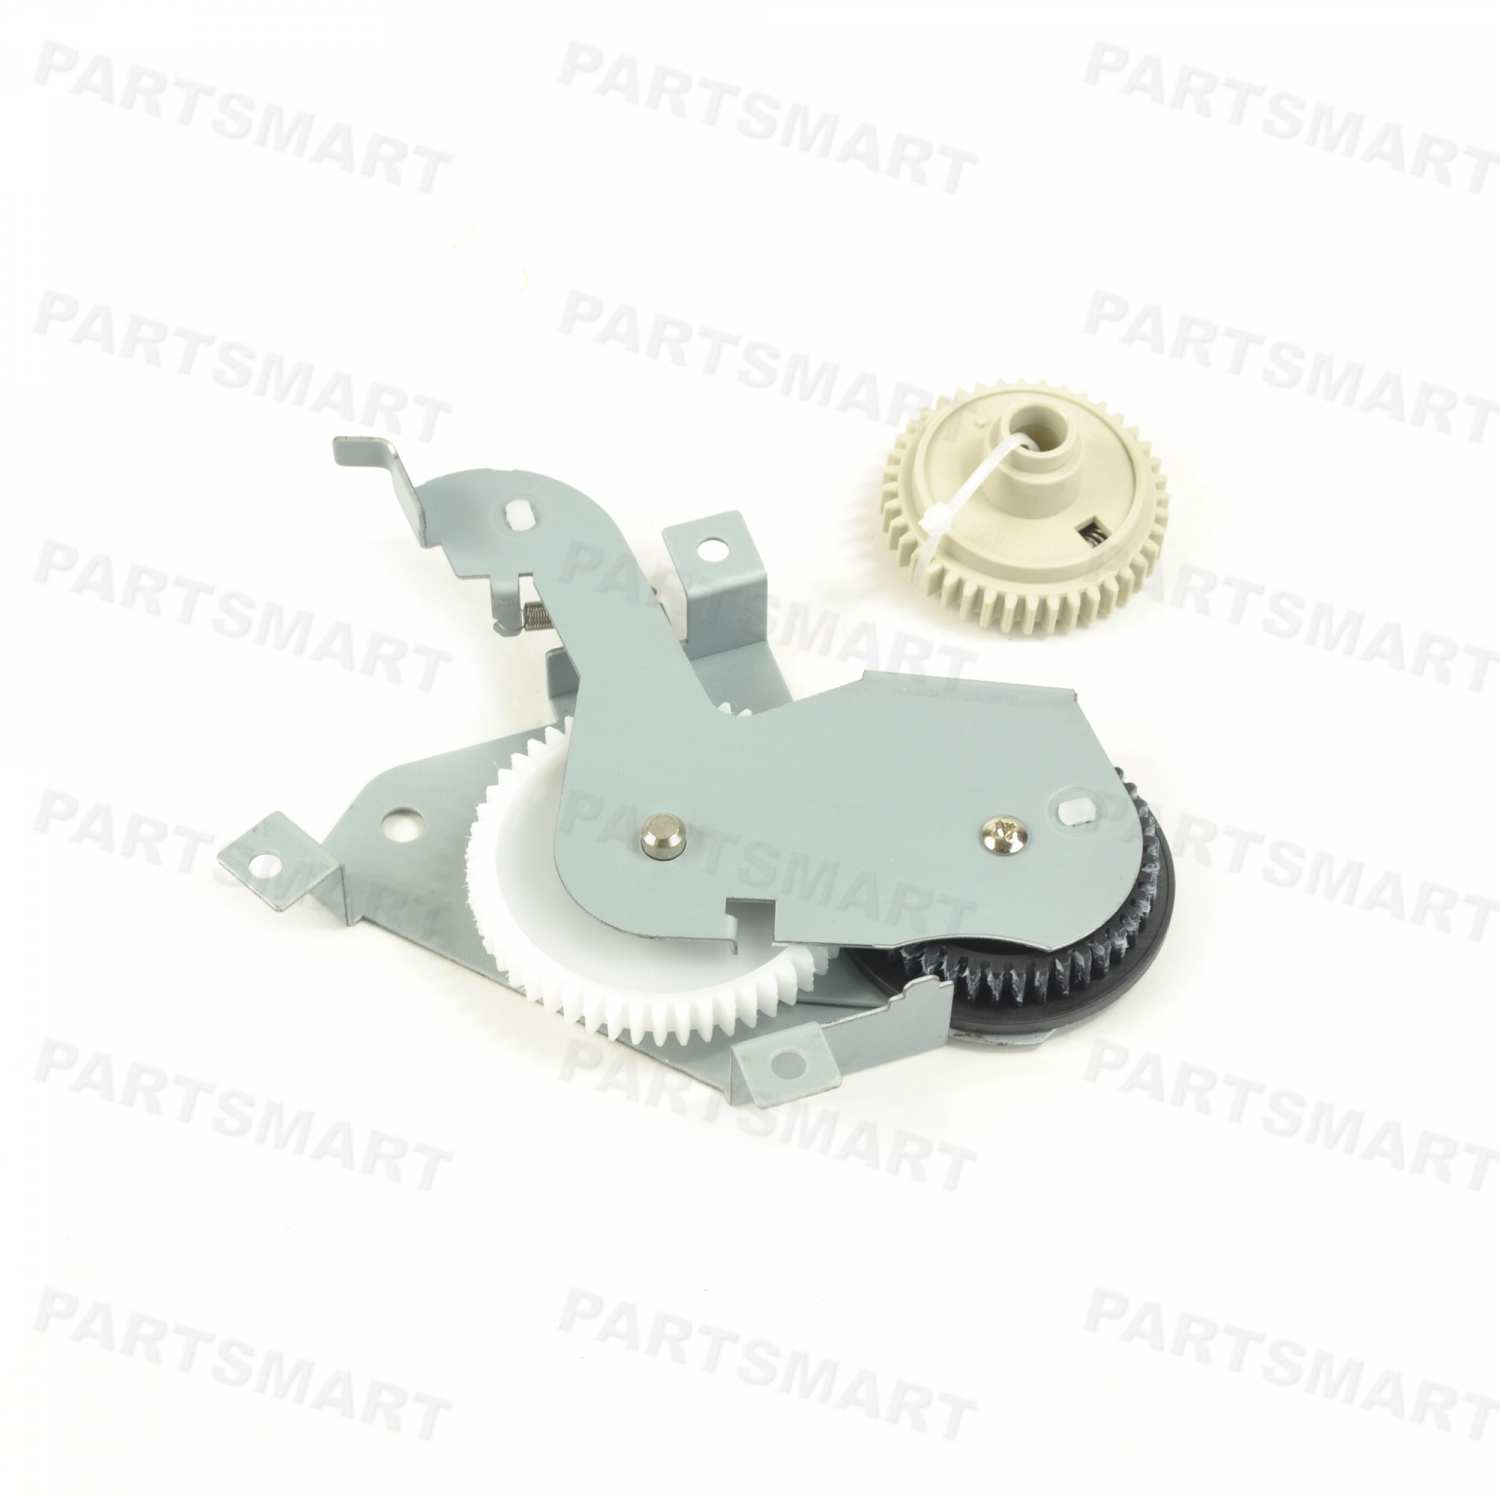 5851-2766 Swing Plate Kit for HP LaserJet 4200, LaserJet 4250